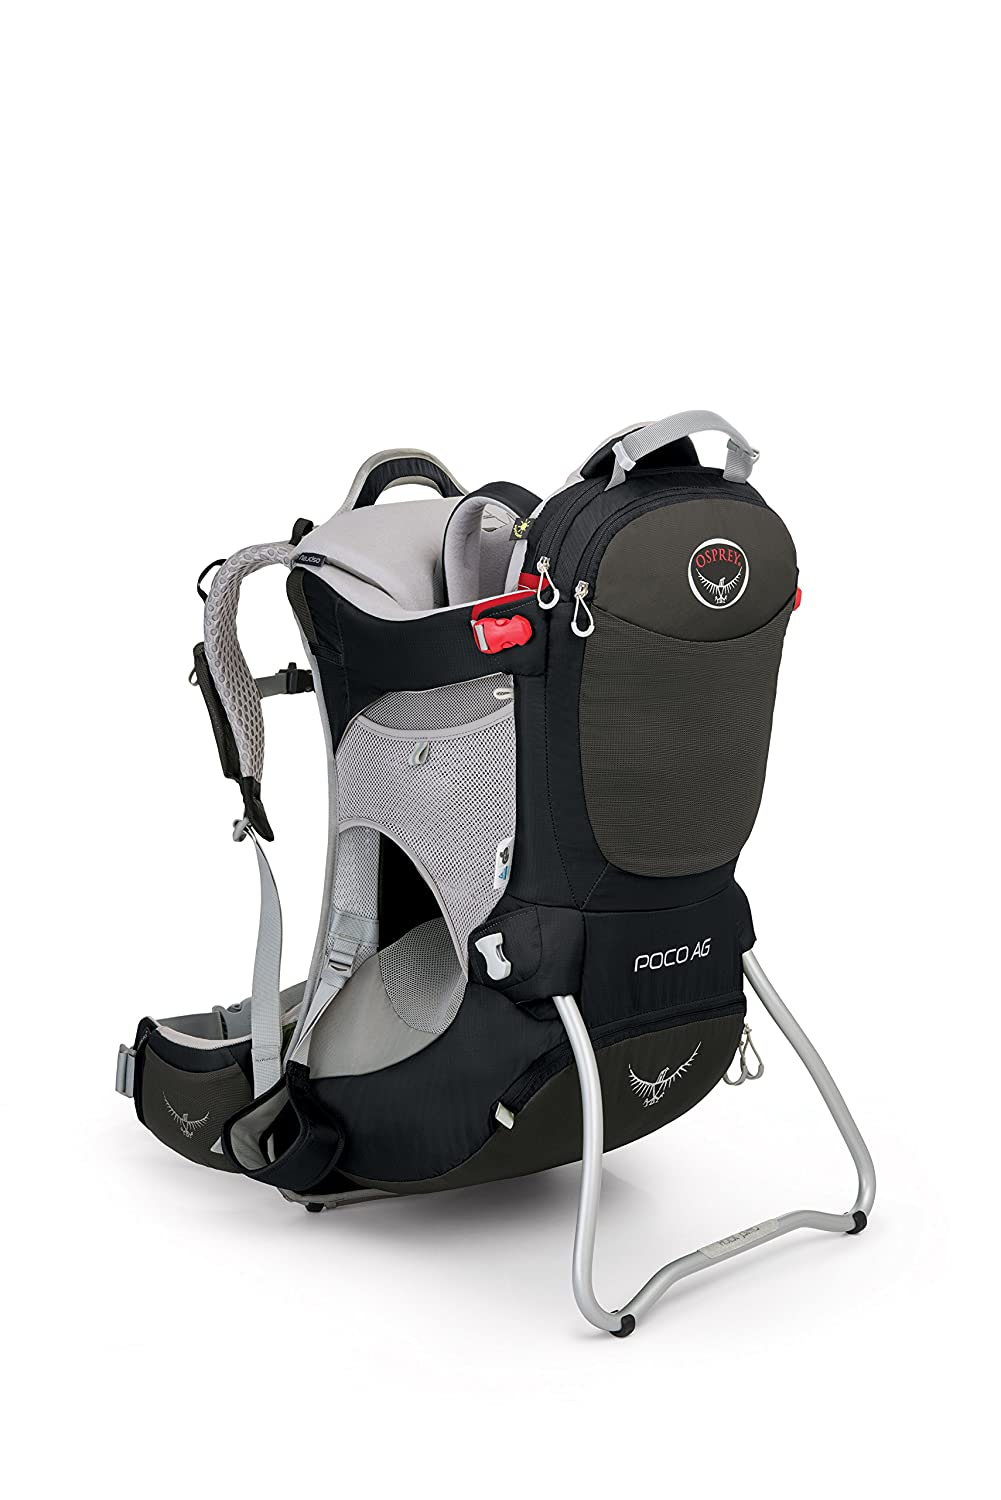 Top 10 Best Baby Carrier For 1 Year Old Review in 2020 7